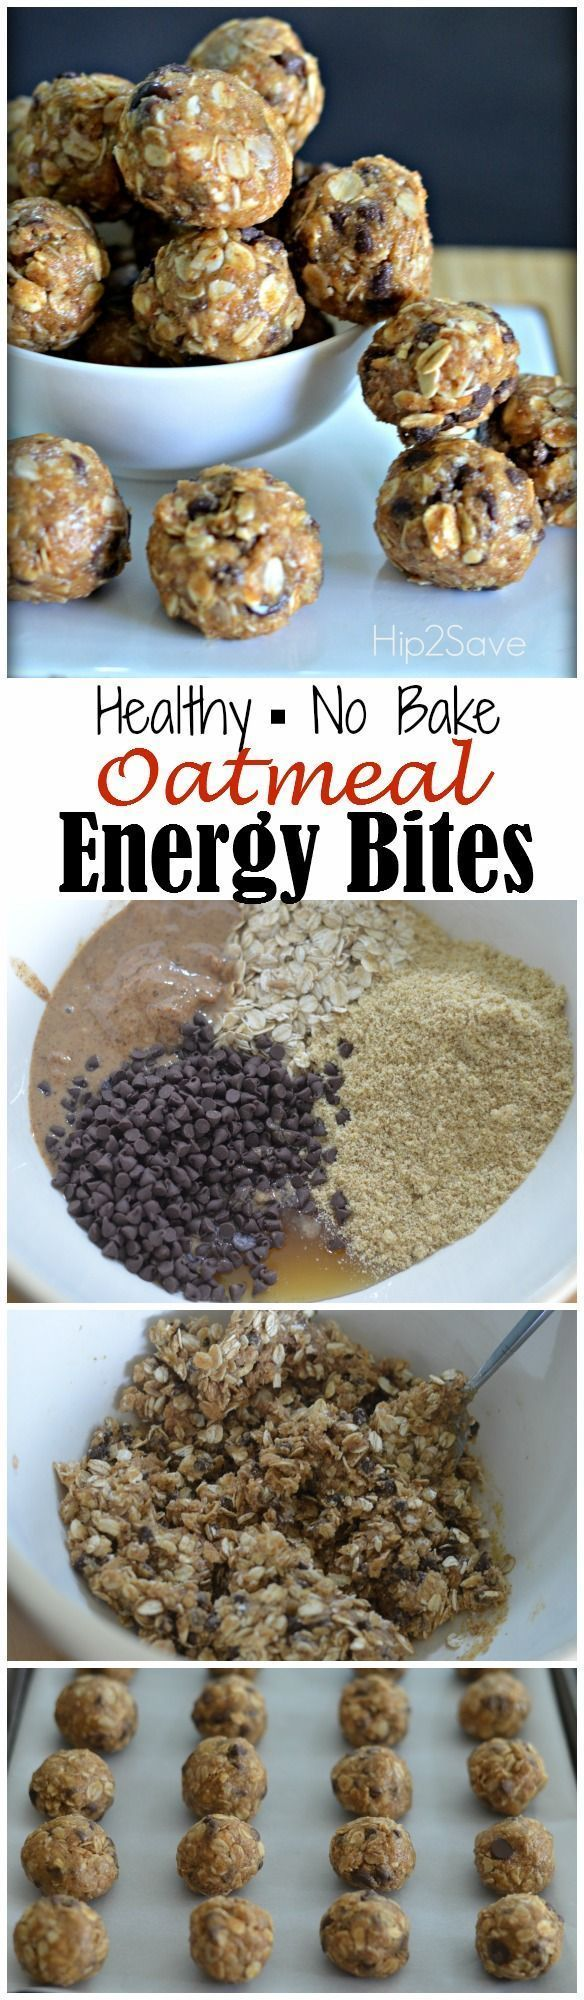 Oatmeal Energy Bites (Easy No-Bake Snack) – Hip2Save.com